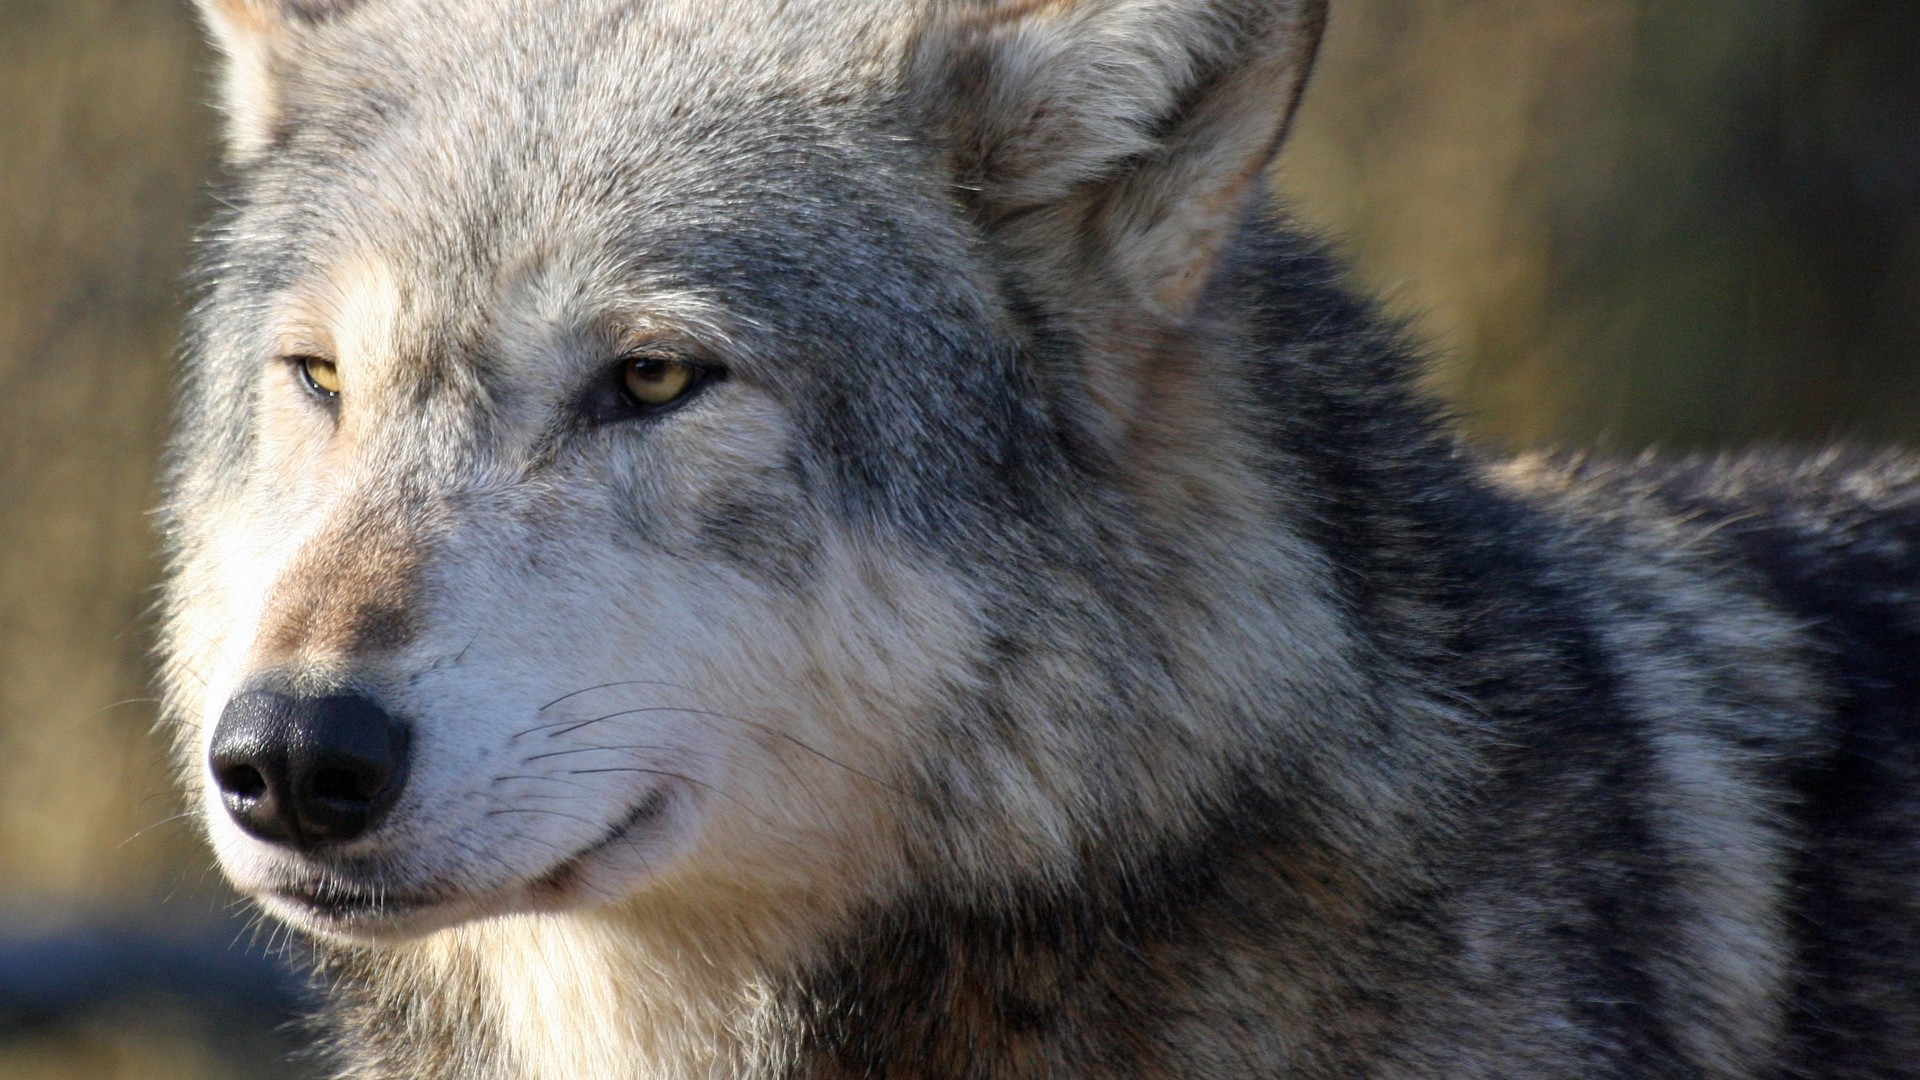 HD Wolf Wallpapers 1080p (71+ images)